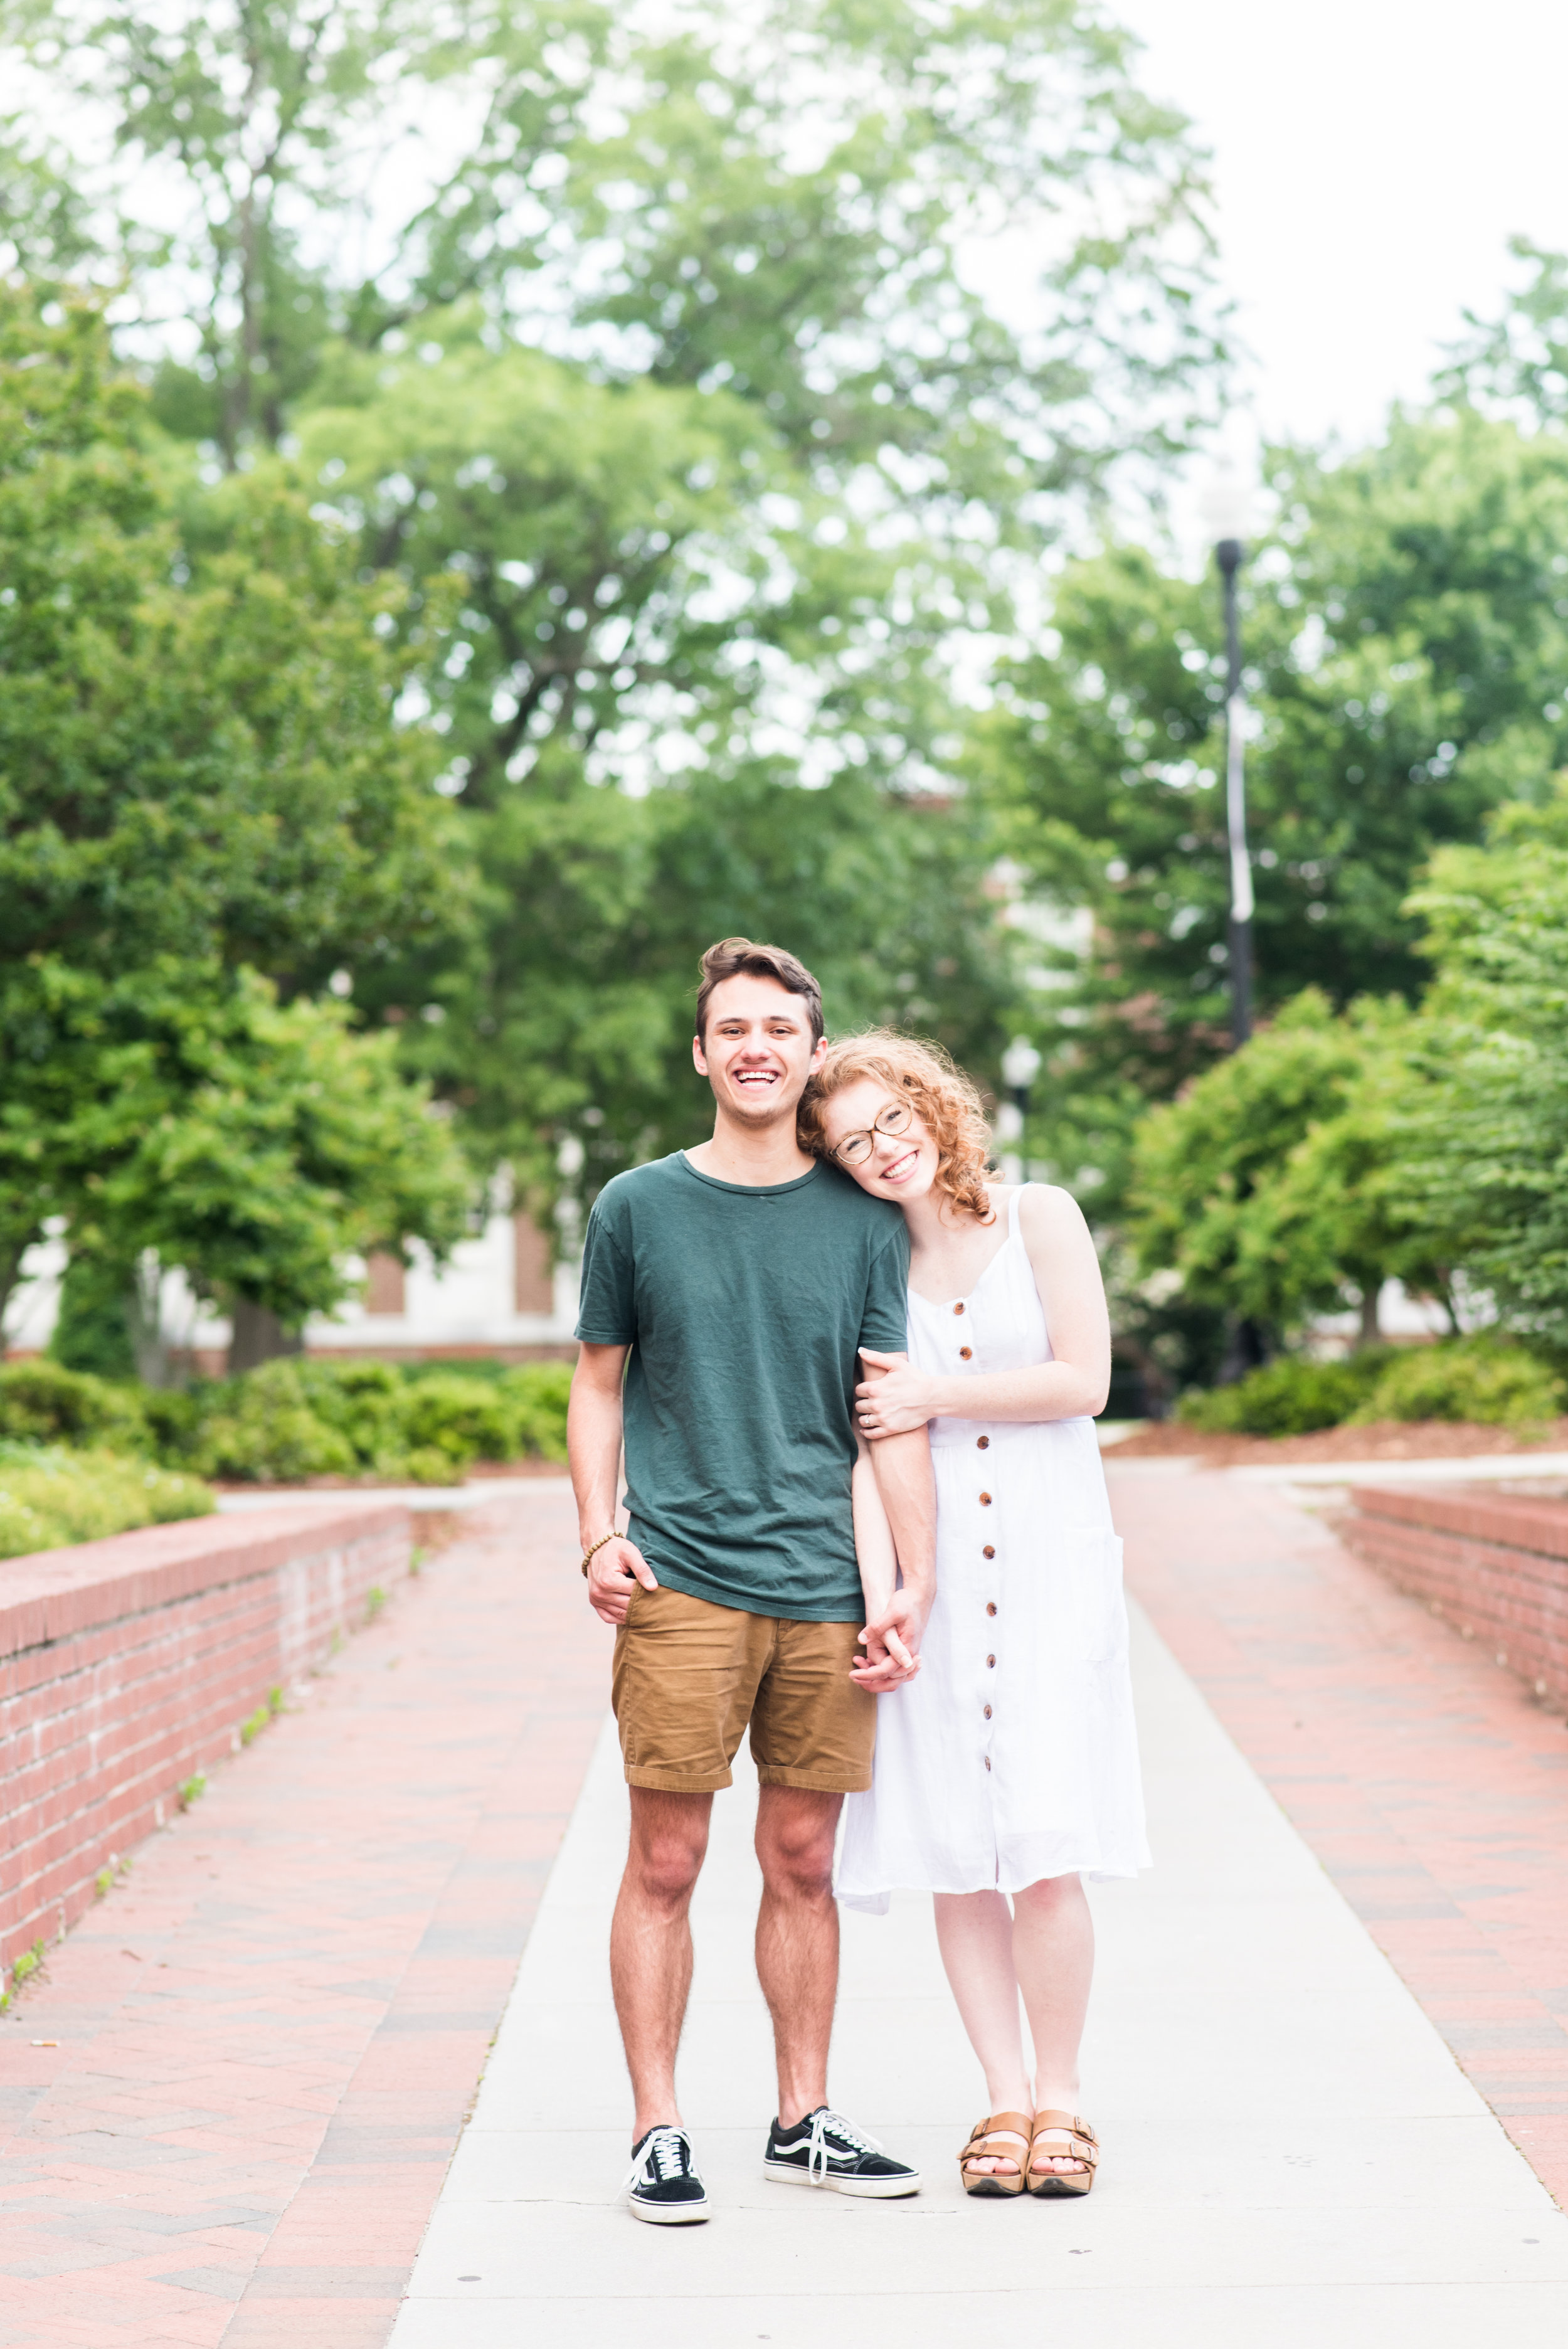 Madalyn Yates Photography Greensboro Wedding Photographer Spring Time Engagement Session